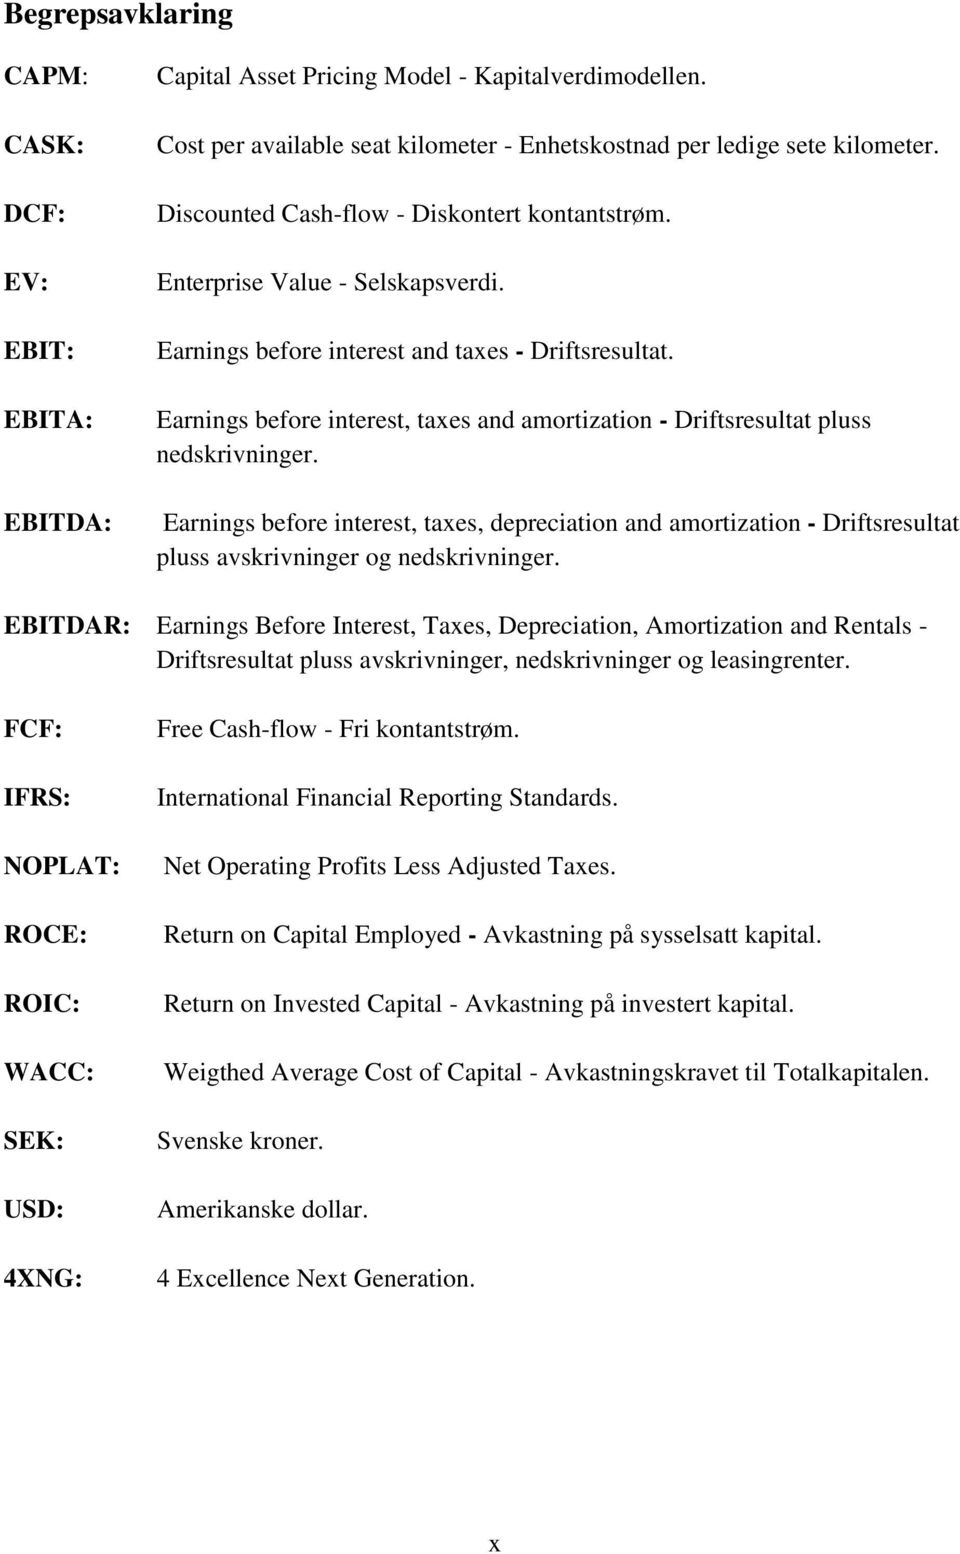 Earnings before interest, taxes and amortization - Driftsresultat pluss nedskrivninger.